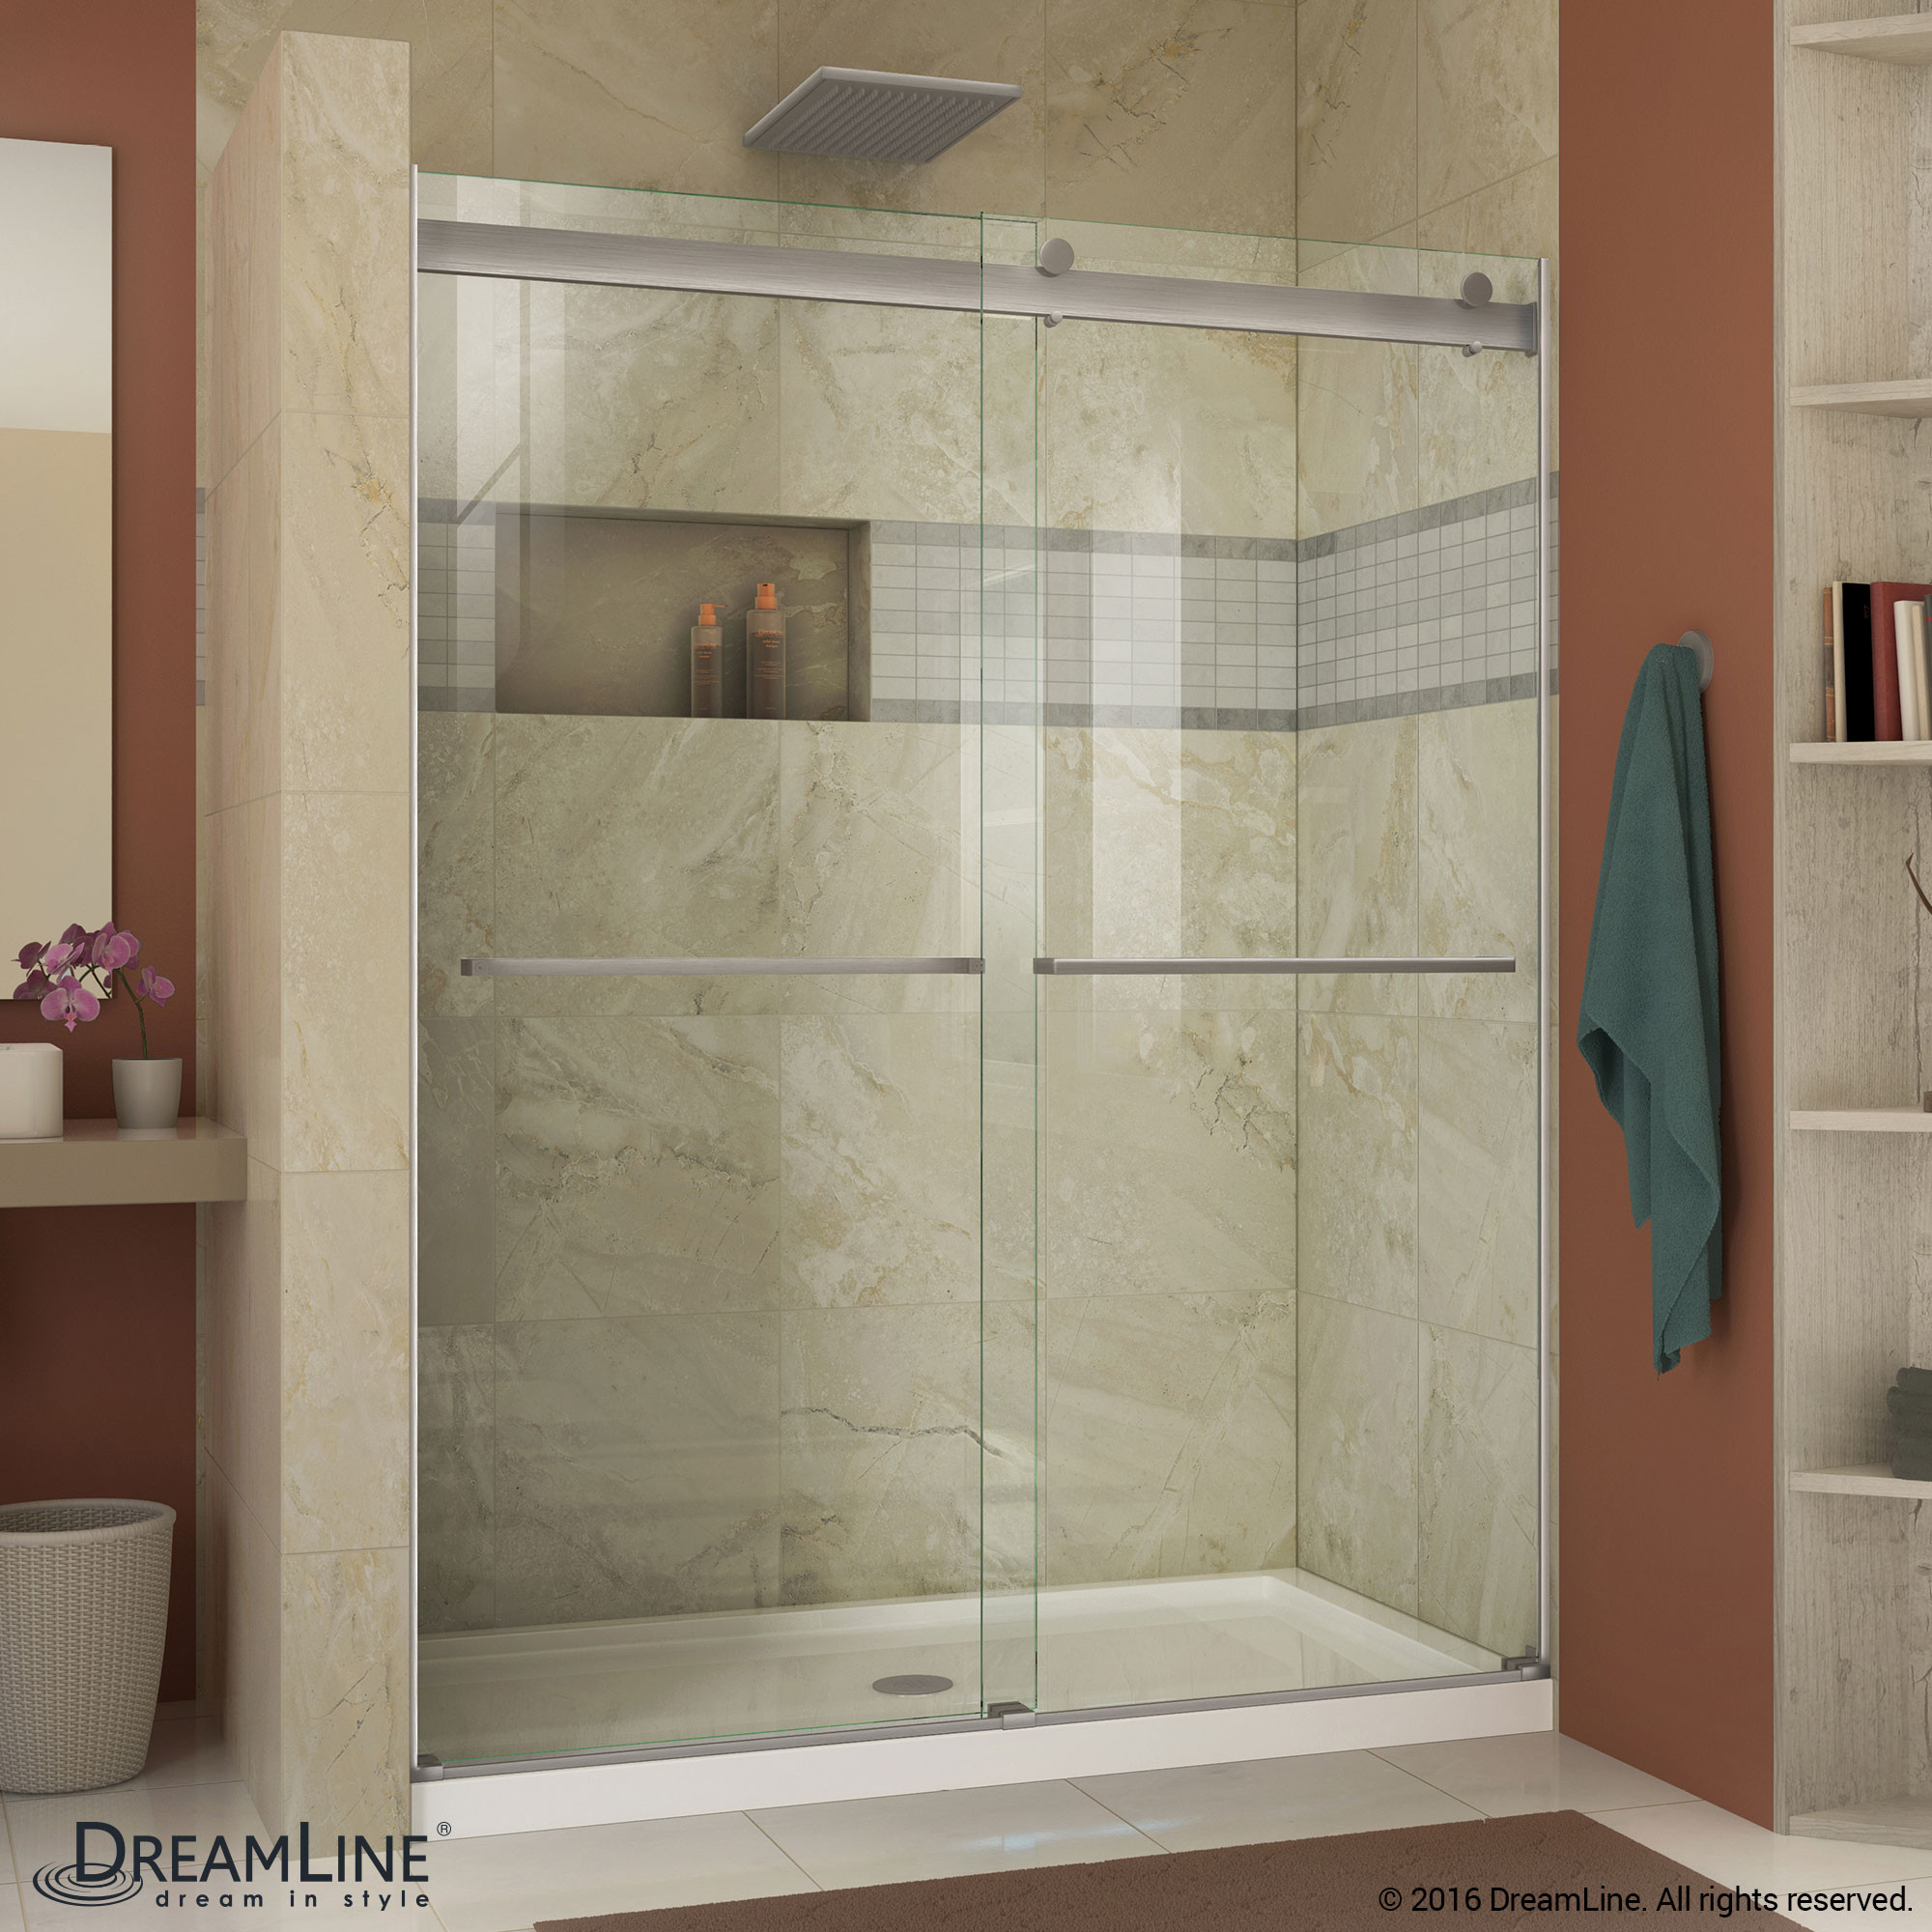 DreamLine SHDR-6360760-04 Brushed Nickel Essence 56 to 60 in. Frameless Bypass Shower Door